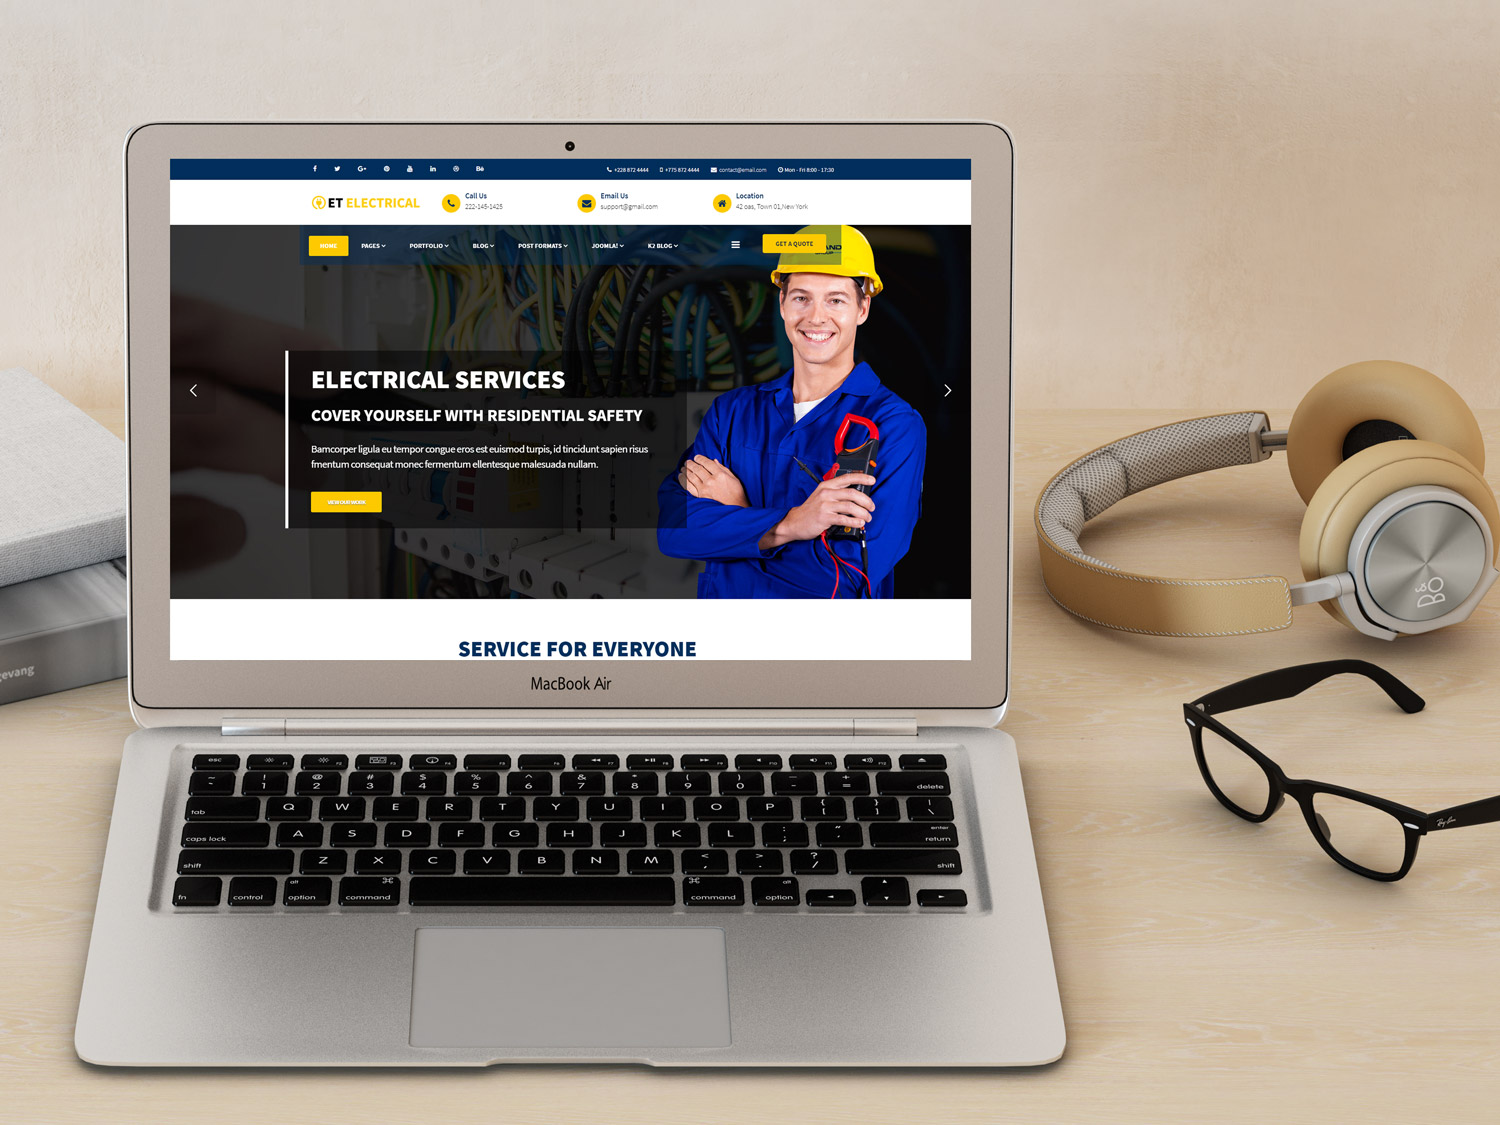 et-electrical-free-responsive-joomla-template-screenshot